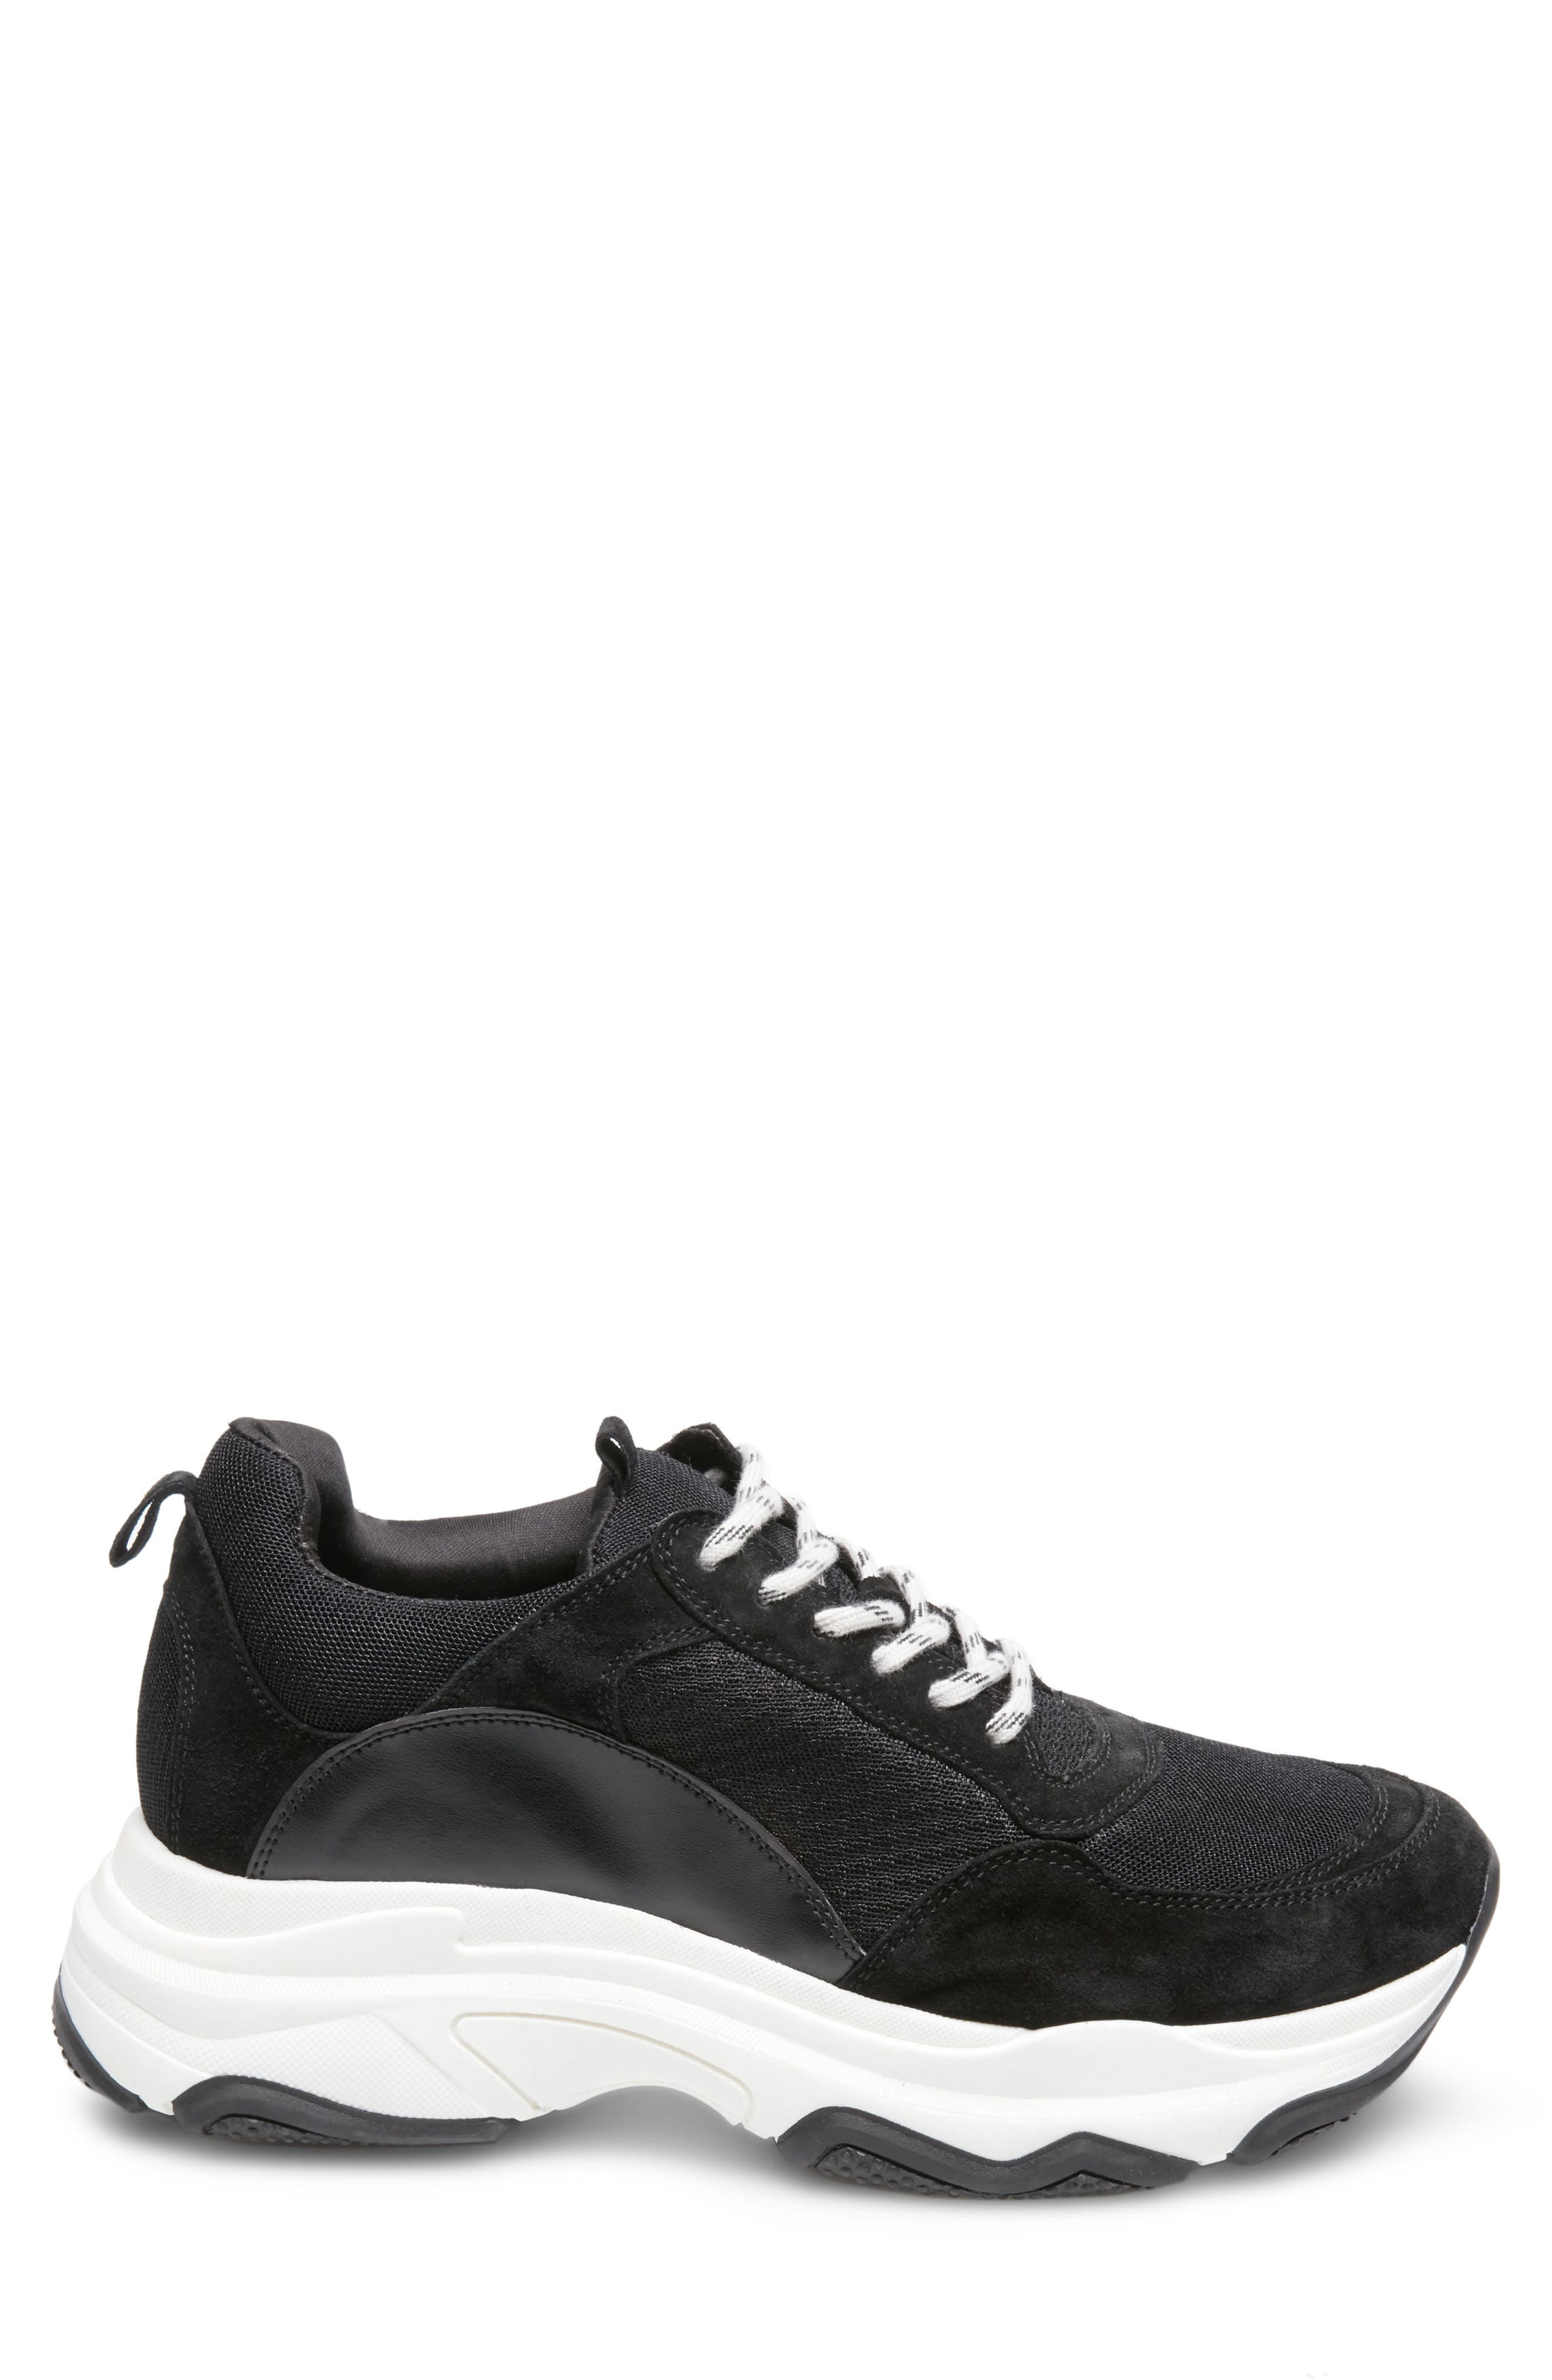 Russell Platform Sneaker,                             Alternate thumbnail 2, color,                             Black Leather